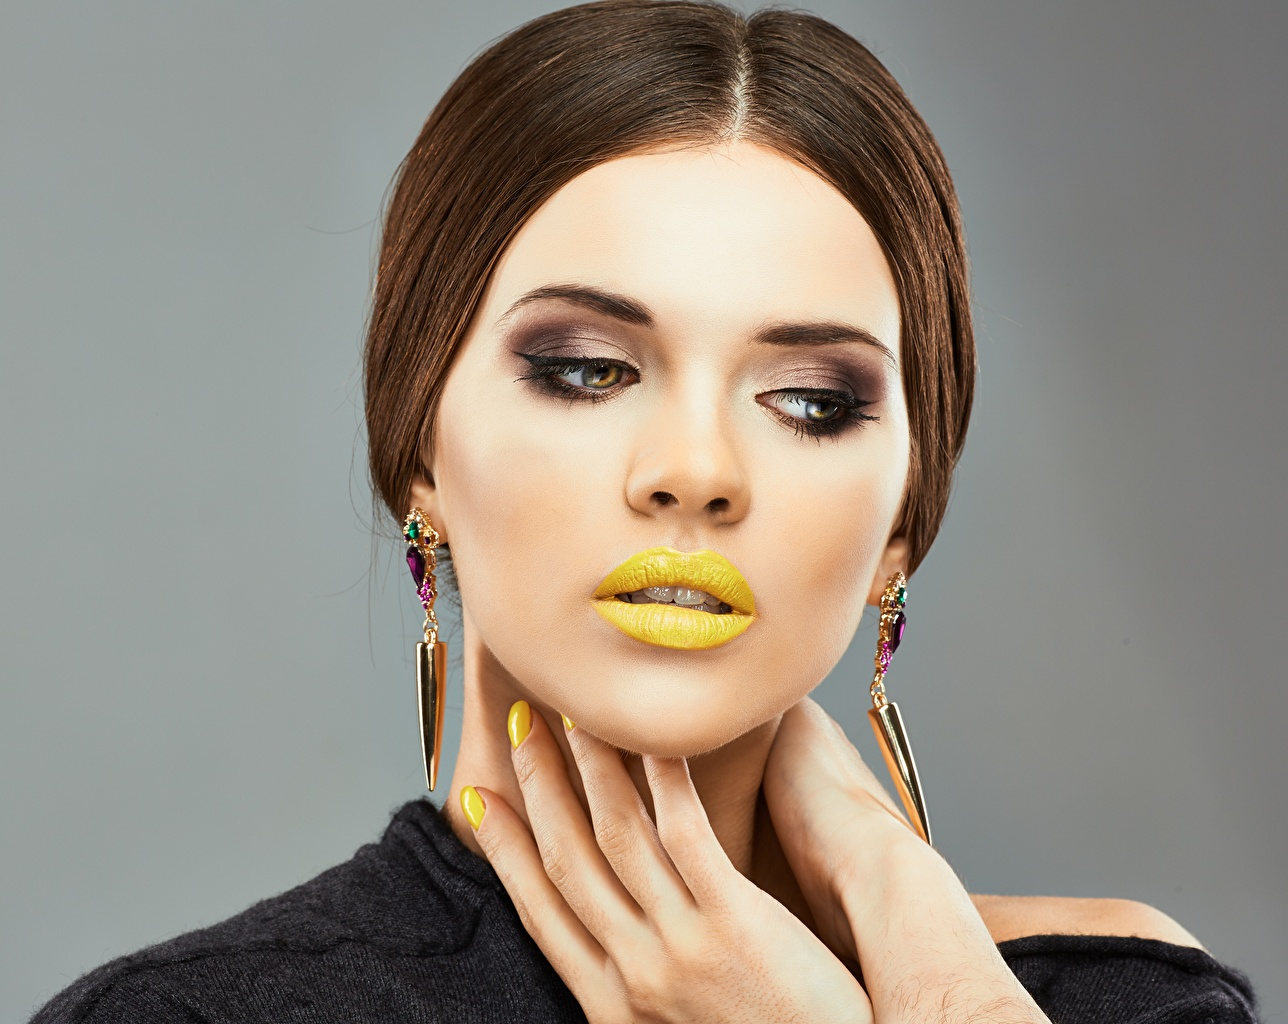 Images Manicure Modelling Makeup hairdo Girls Lips Hands Model haircut Hairstyle hairstyles female young woman